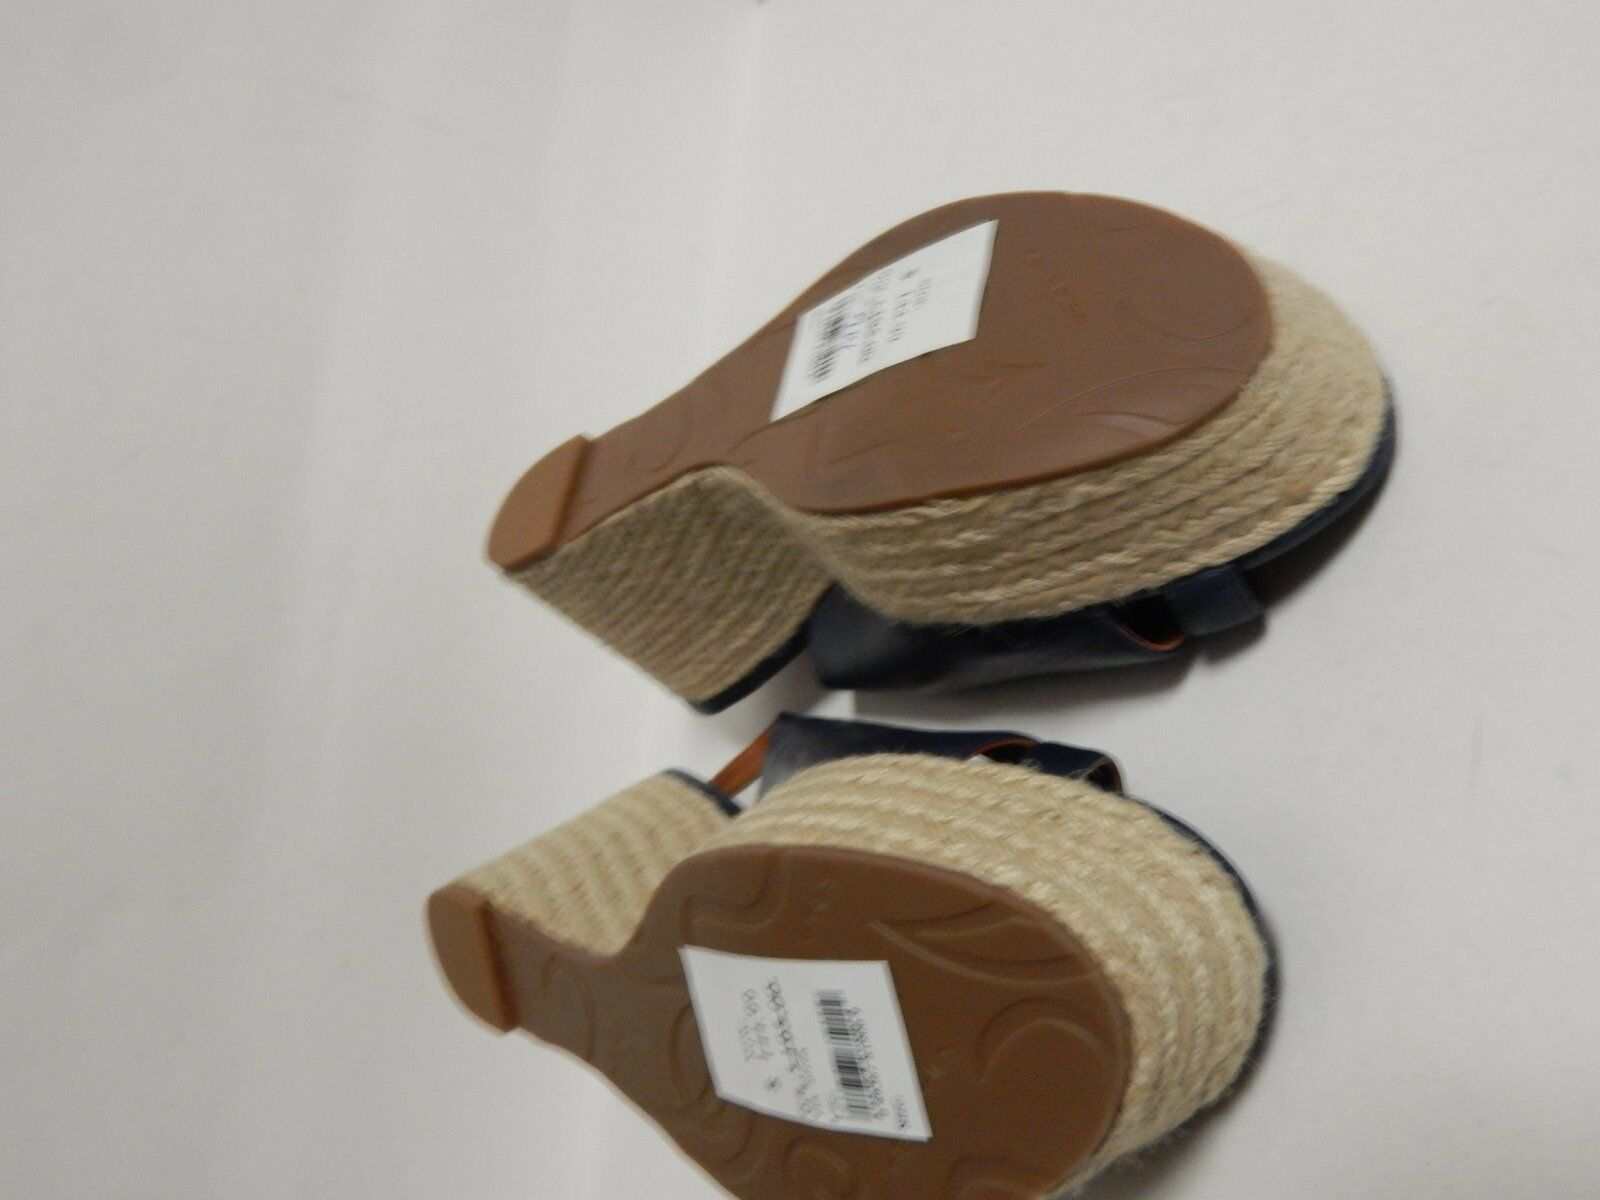 Via Spiga Luciana Sandale Platform Wedge Espadrille Sandale Luciana 10 M Navy  New without Box 3ac645